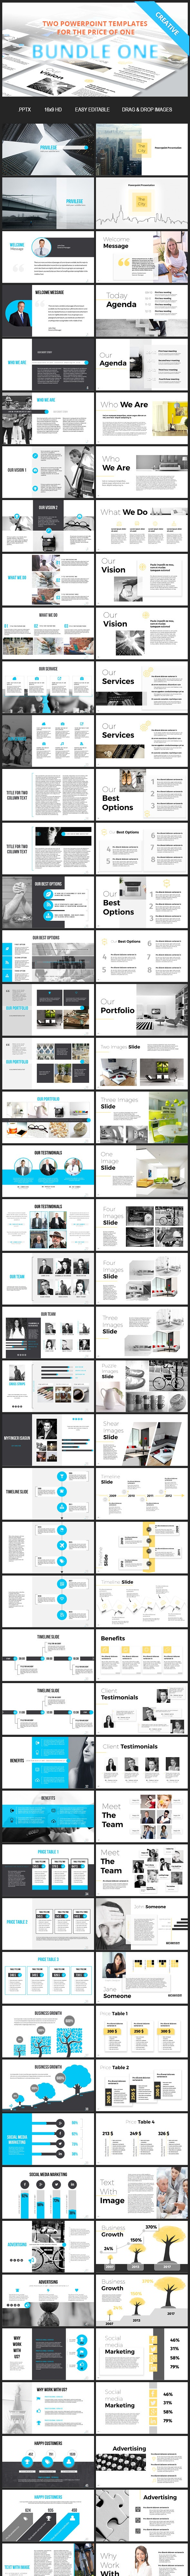 Bundle One - 2 Powerpoint Templates - PowerPoint Templates Presentation Templates